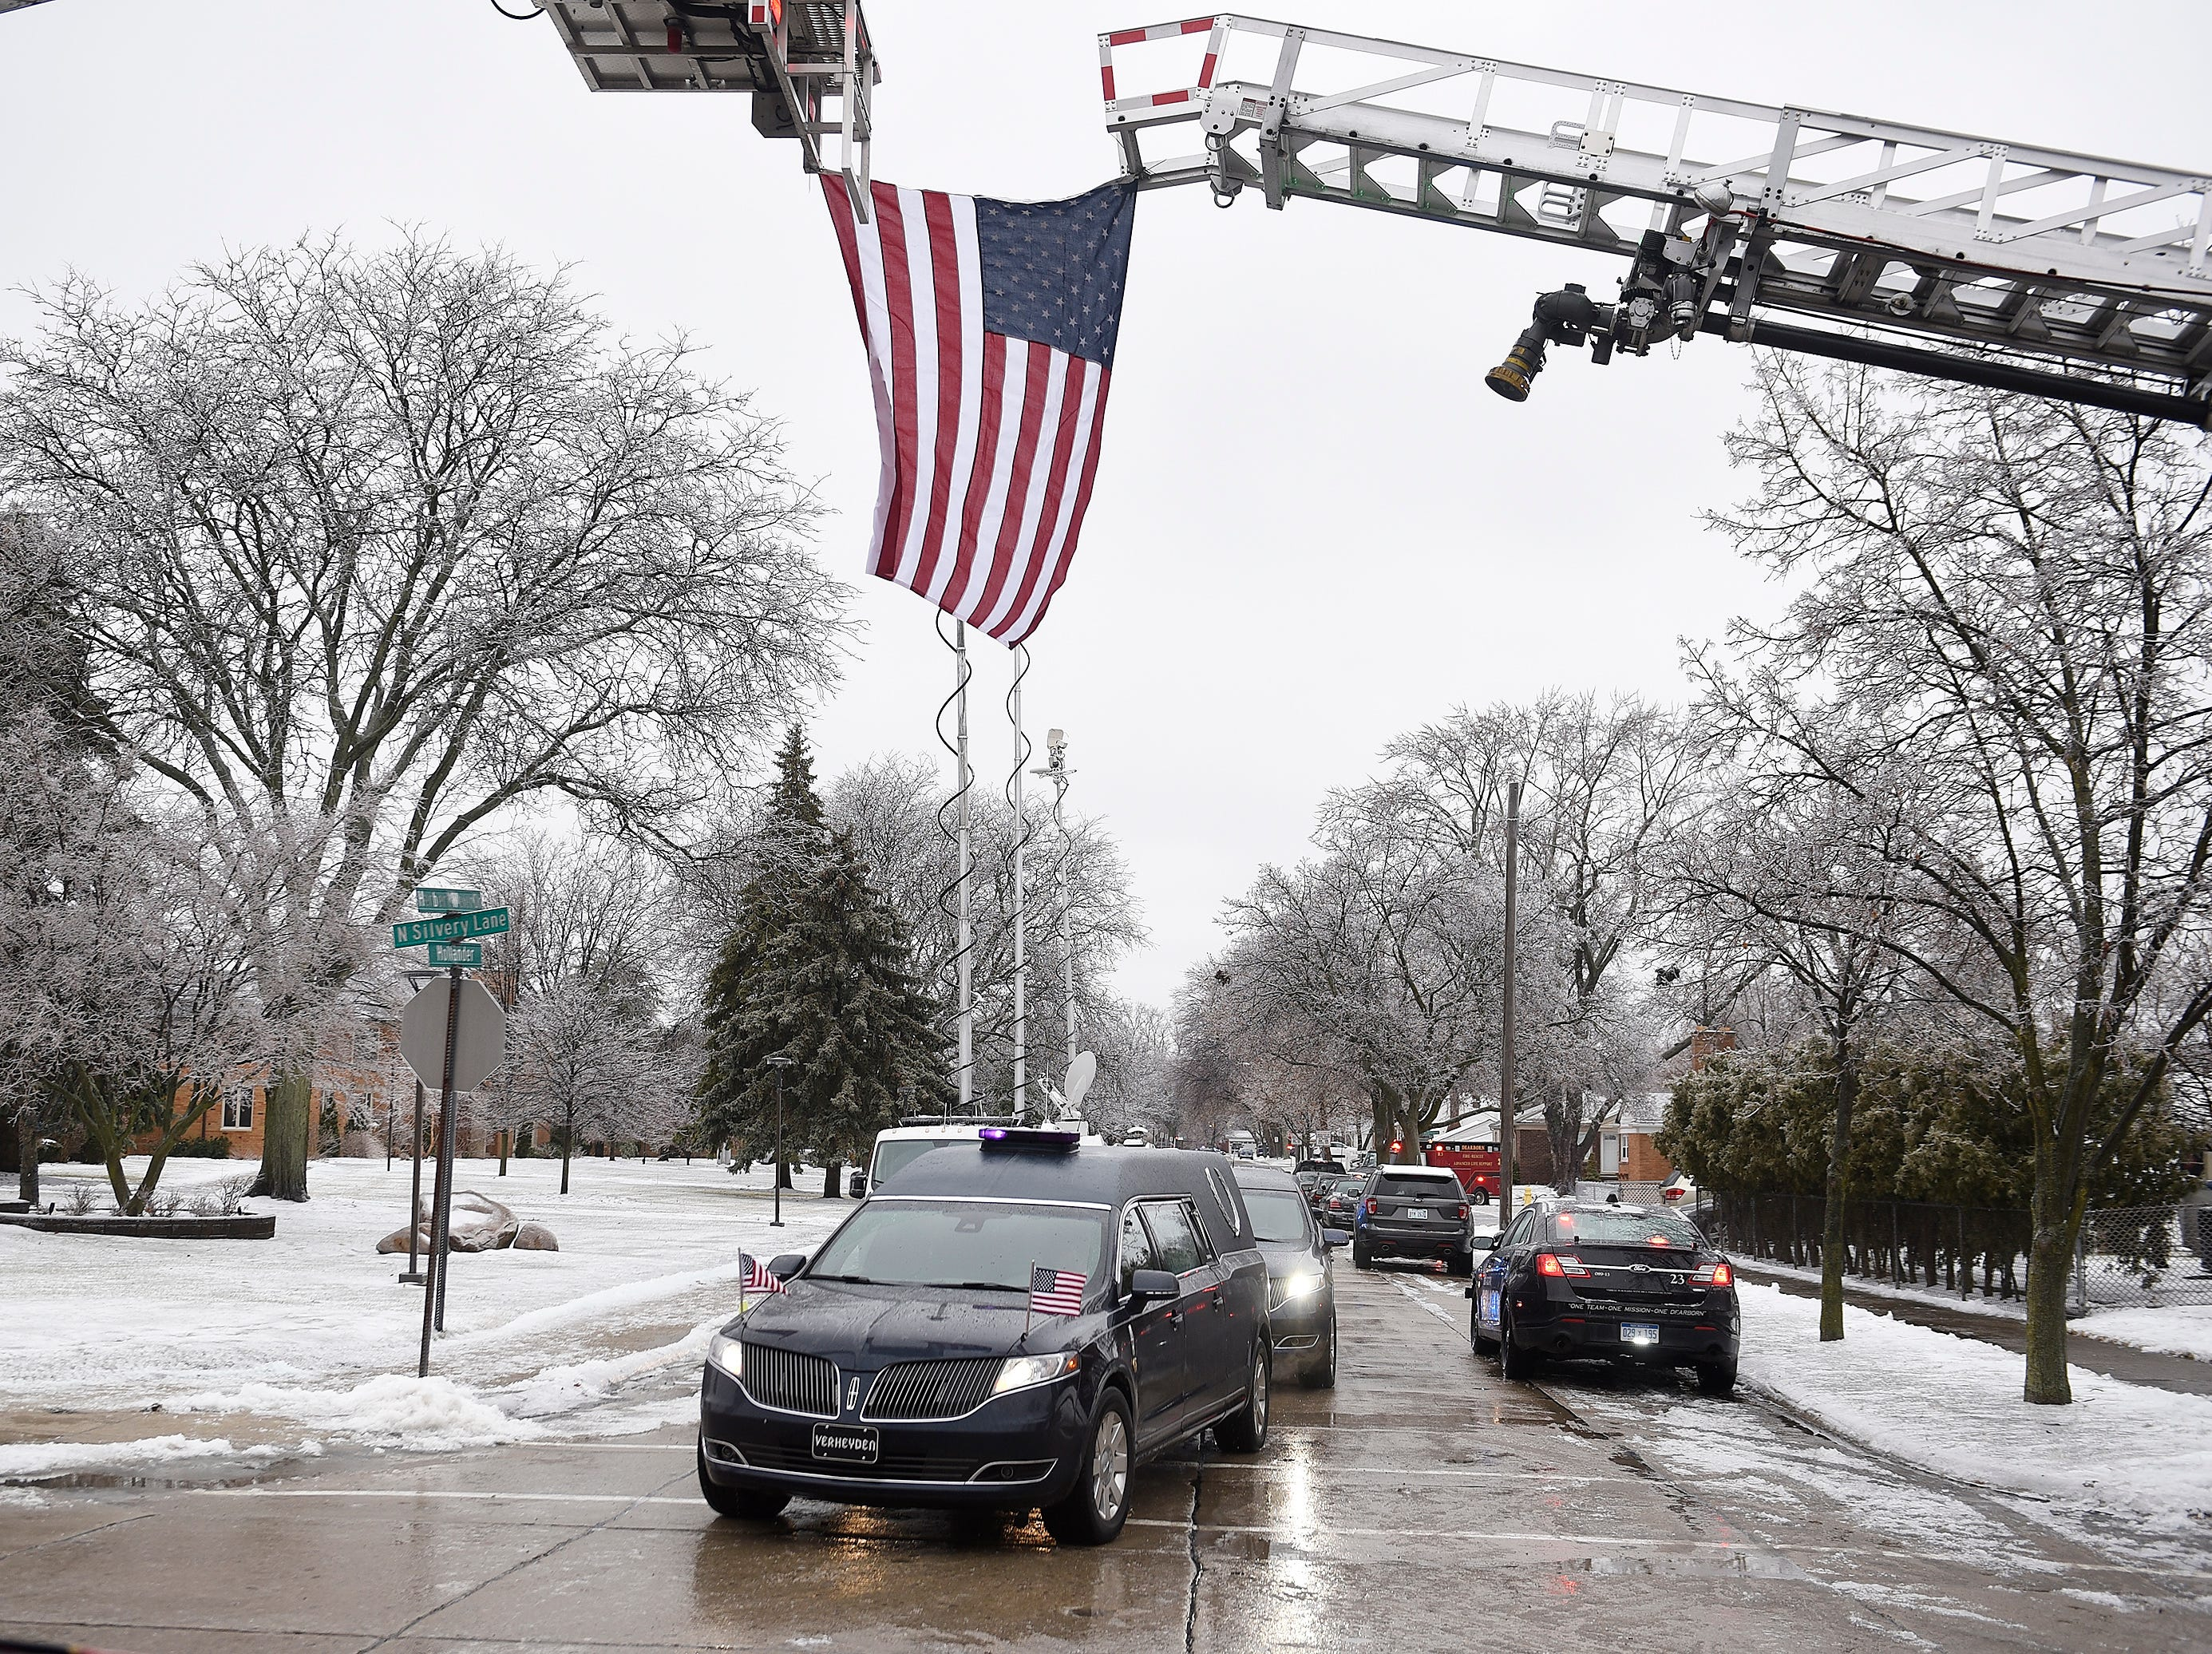 The hearse carrying the casket of John D. Dingell arrives at the Church of the Divine Child for his funeral.***Funeral Services for John D. Dingell at the Church of the Divine Child.,February 12, 2019, Dearborn, Mi. (Clarence Tabb Jr./The Detroit News)